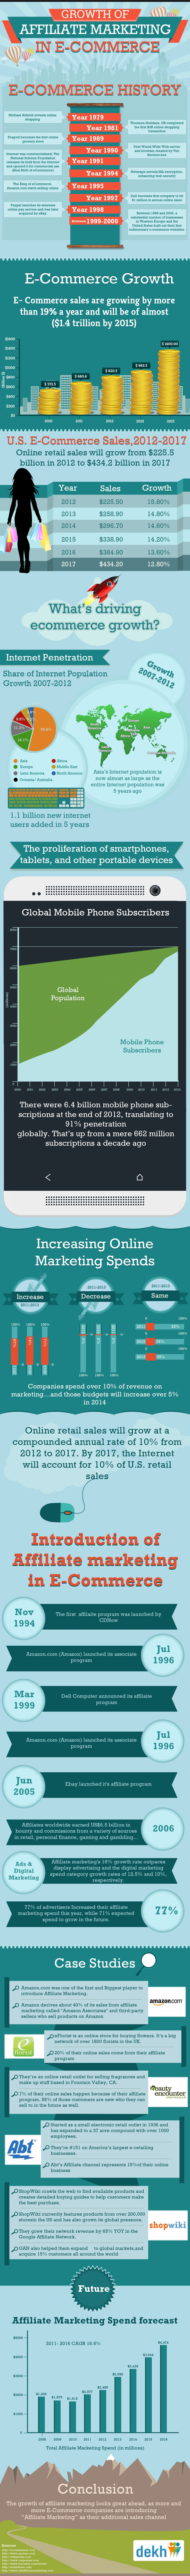 Growth Of Affiliate Marketing In E-Commerce #Infographic